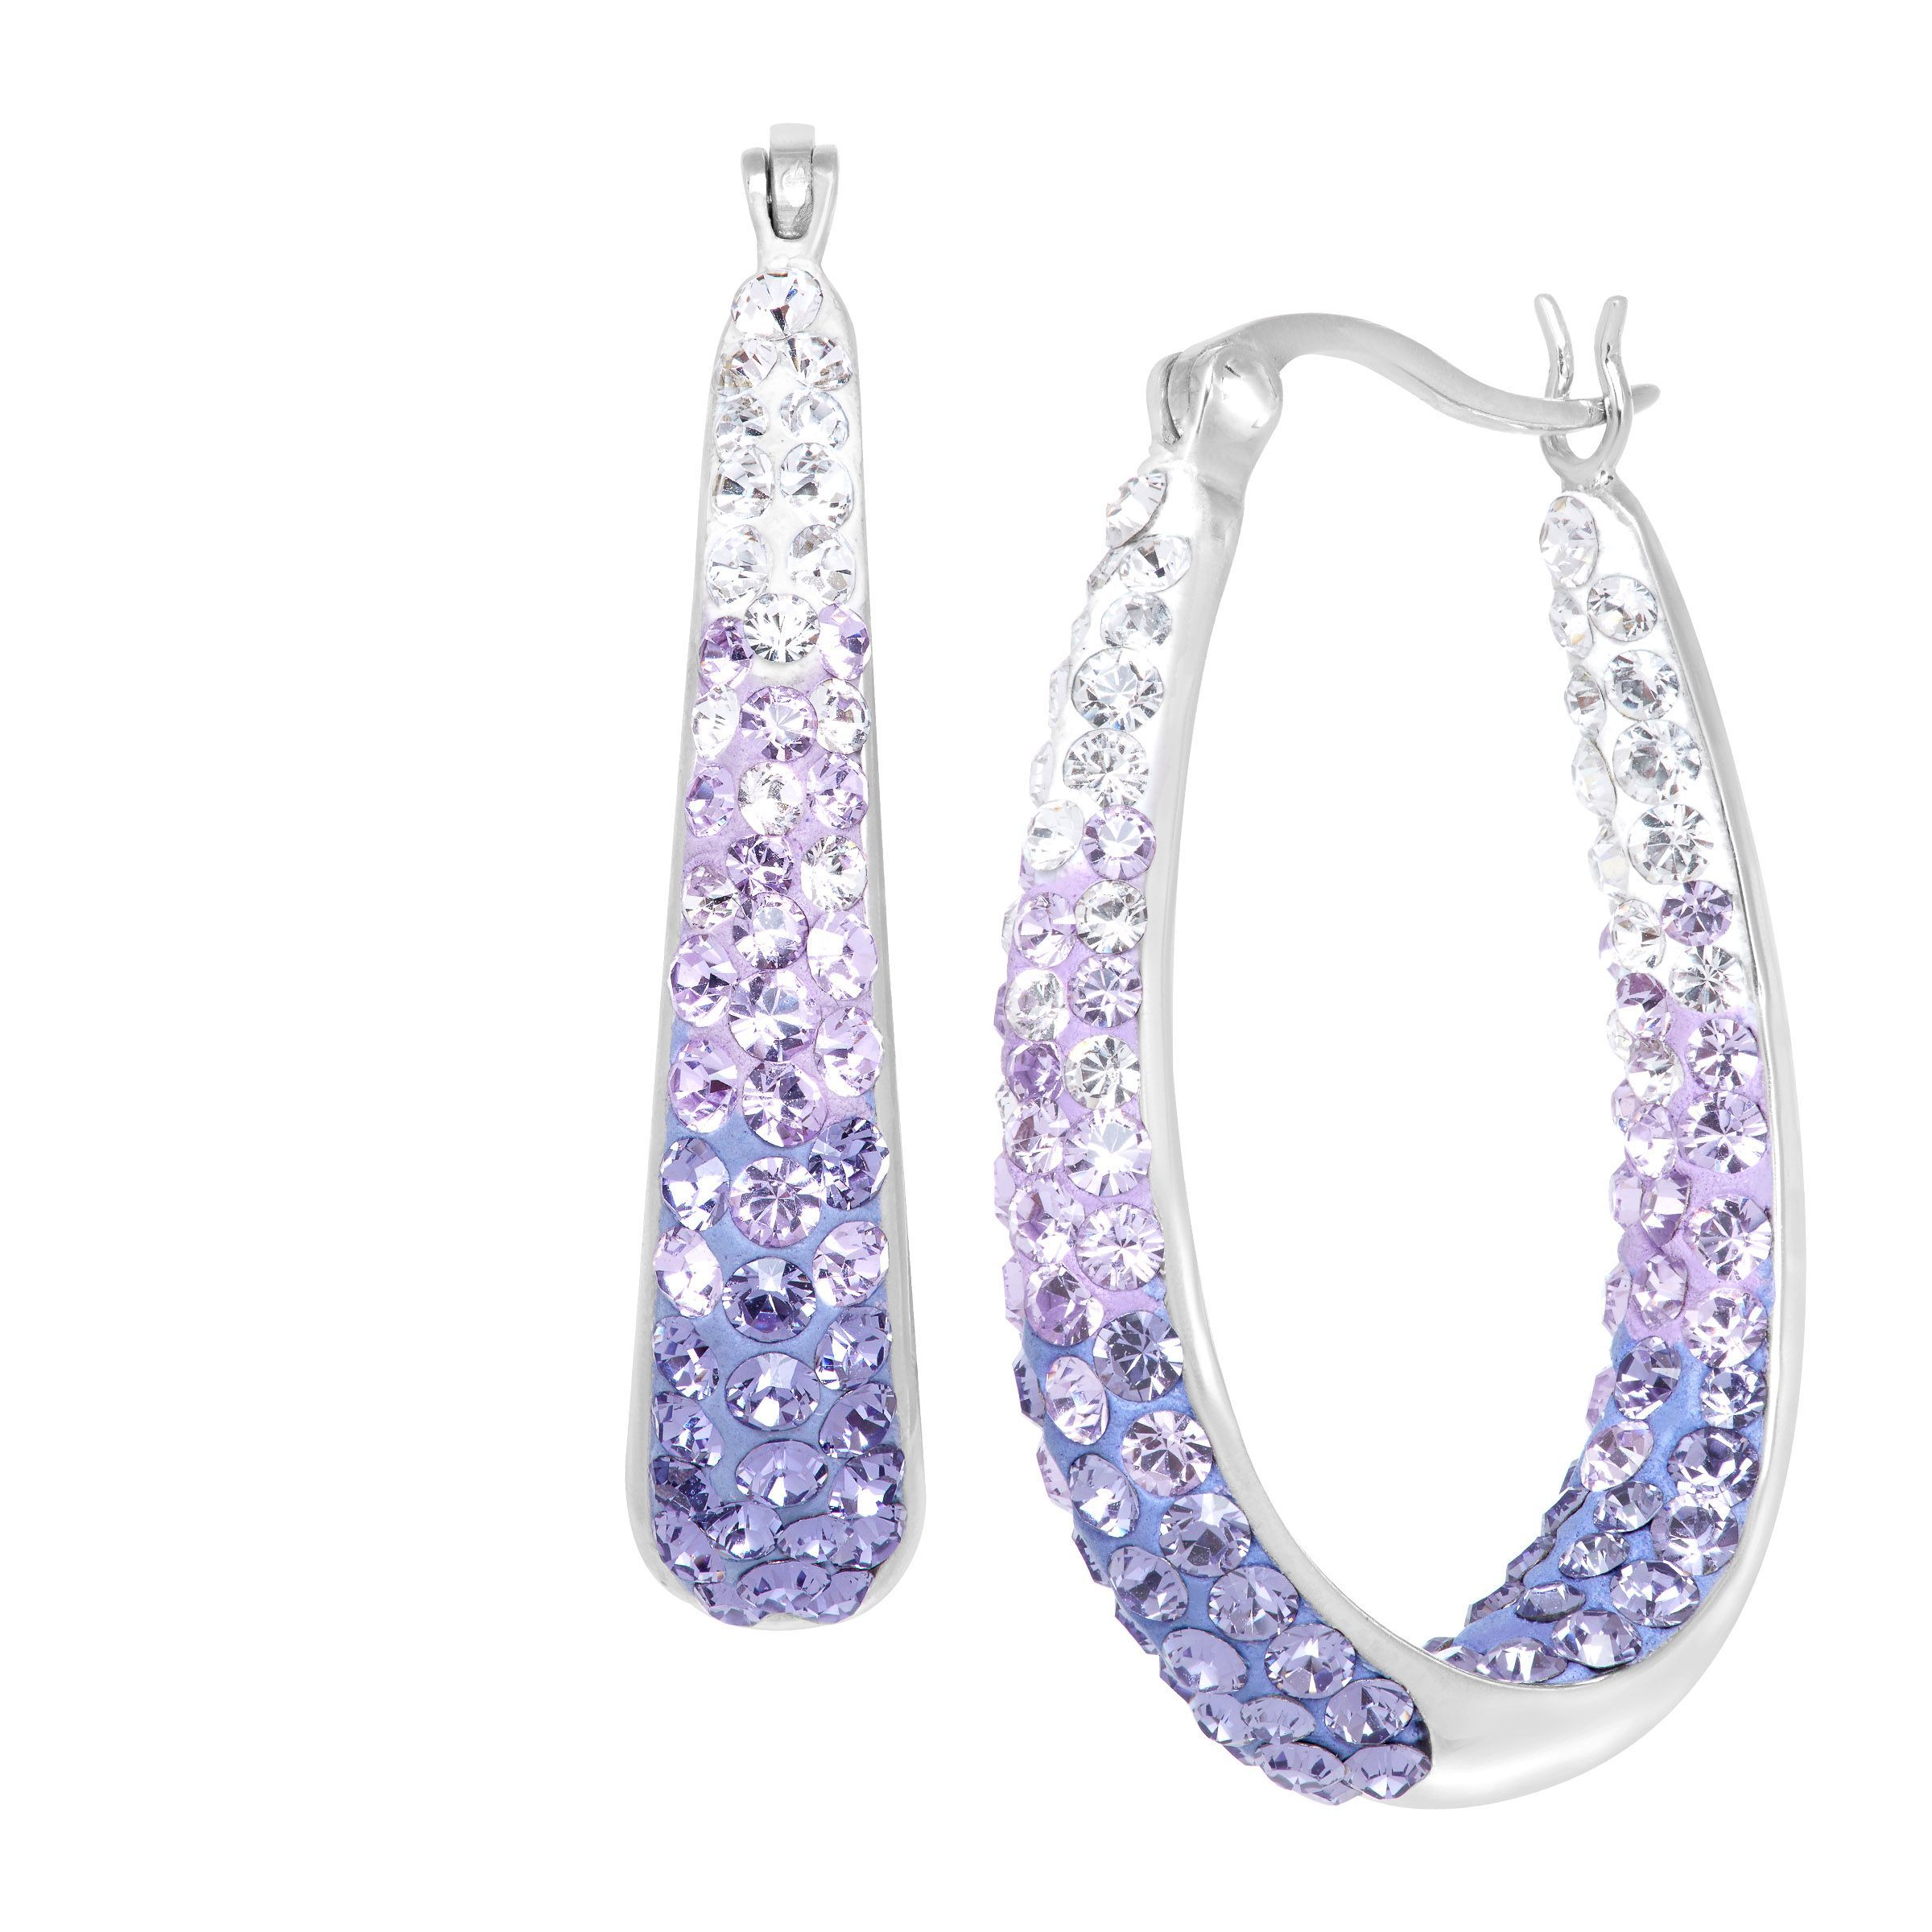 Details About Crystaluxe Oval Hoop Earrings With Lavender Swarovski Crystals Sterling Silver